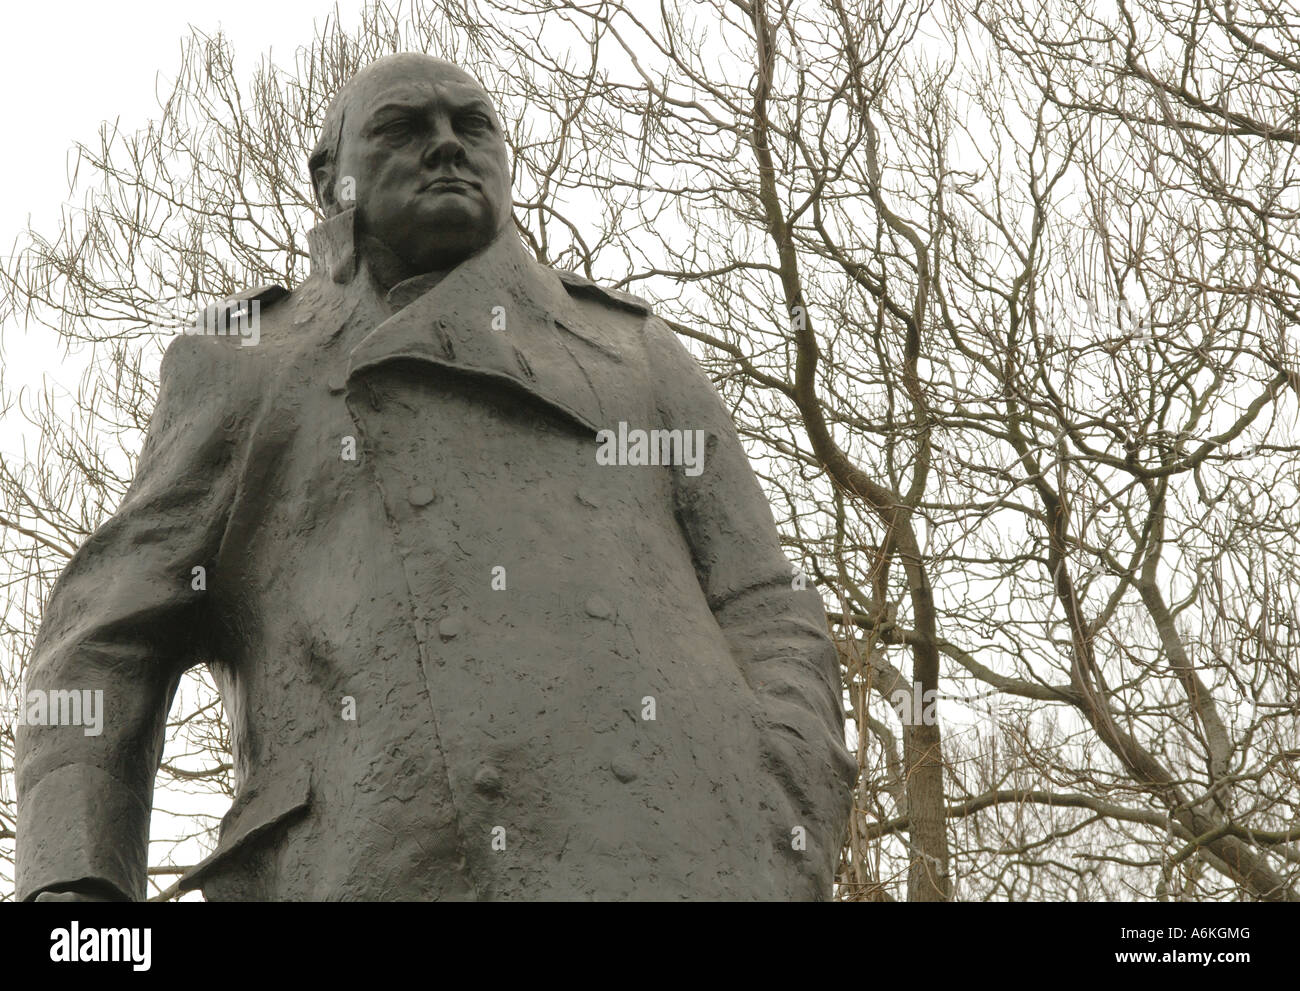 Statue of Winston Churchill in Westminster Square, London. - Stock Image